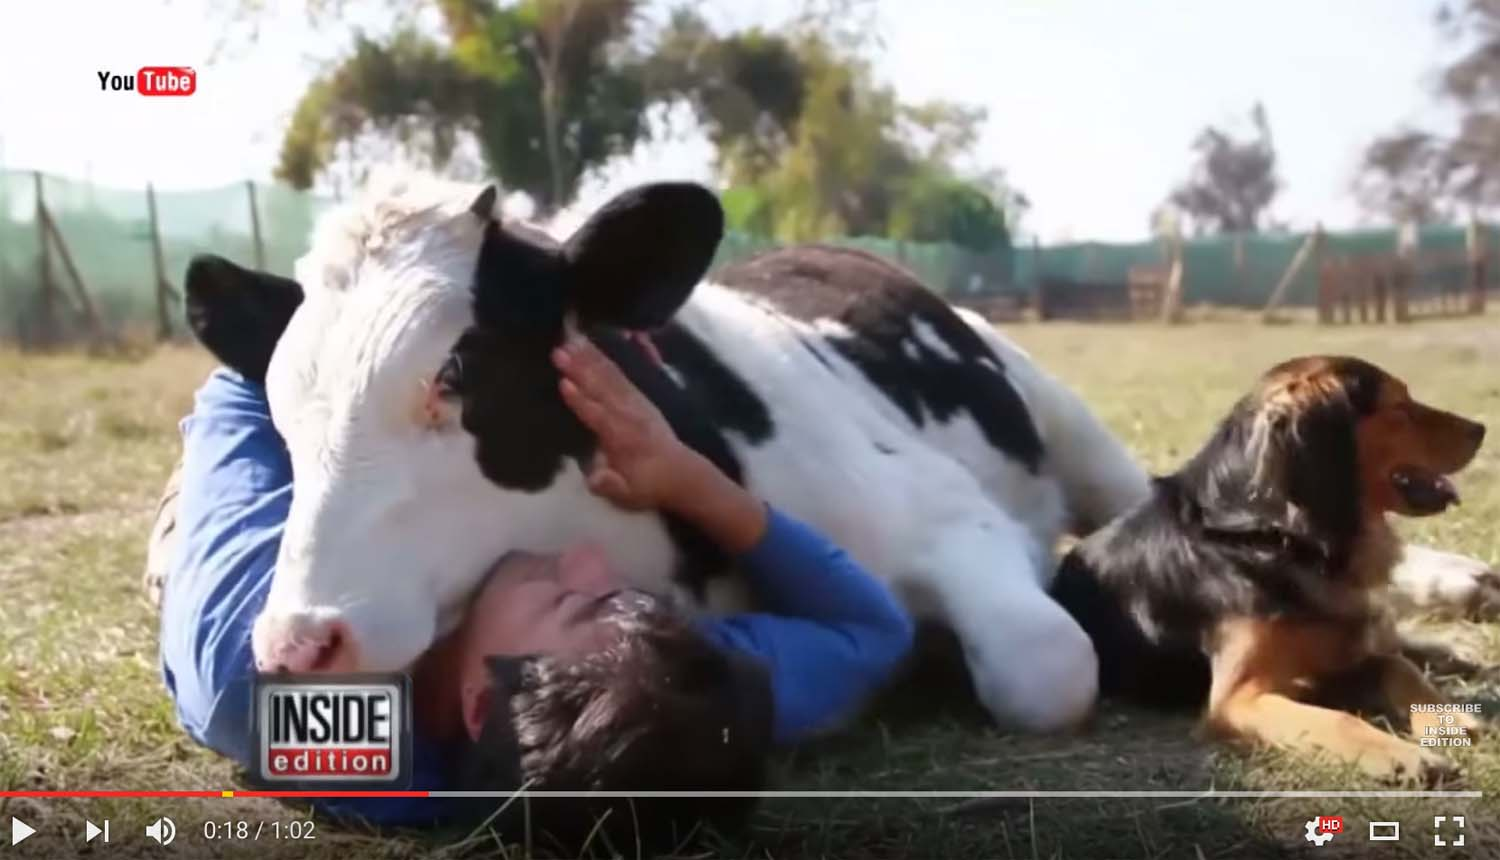 Cows have feelings